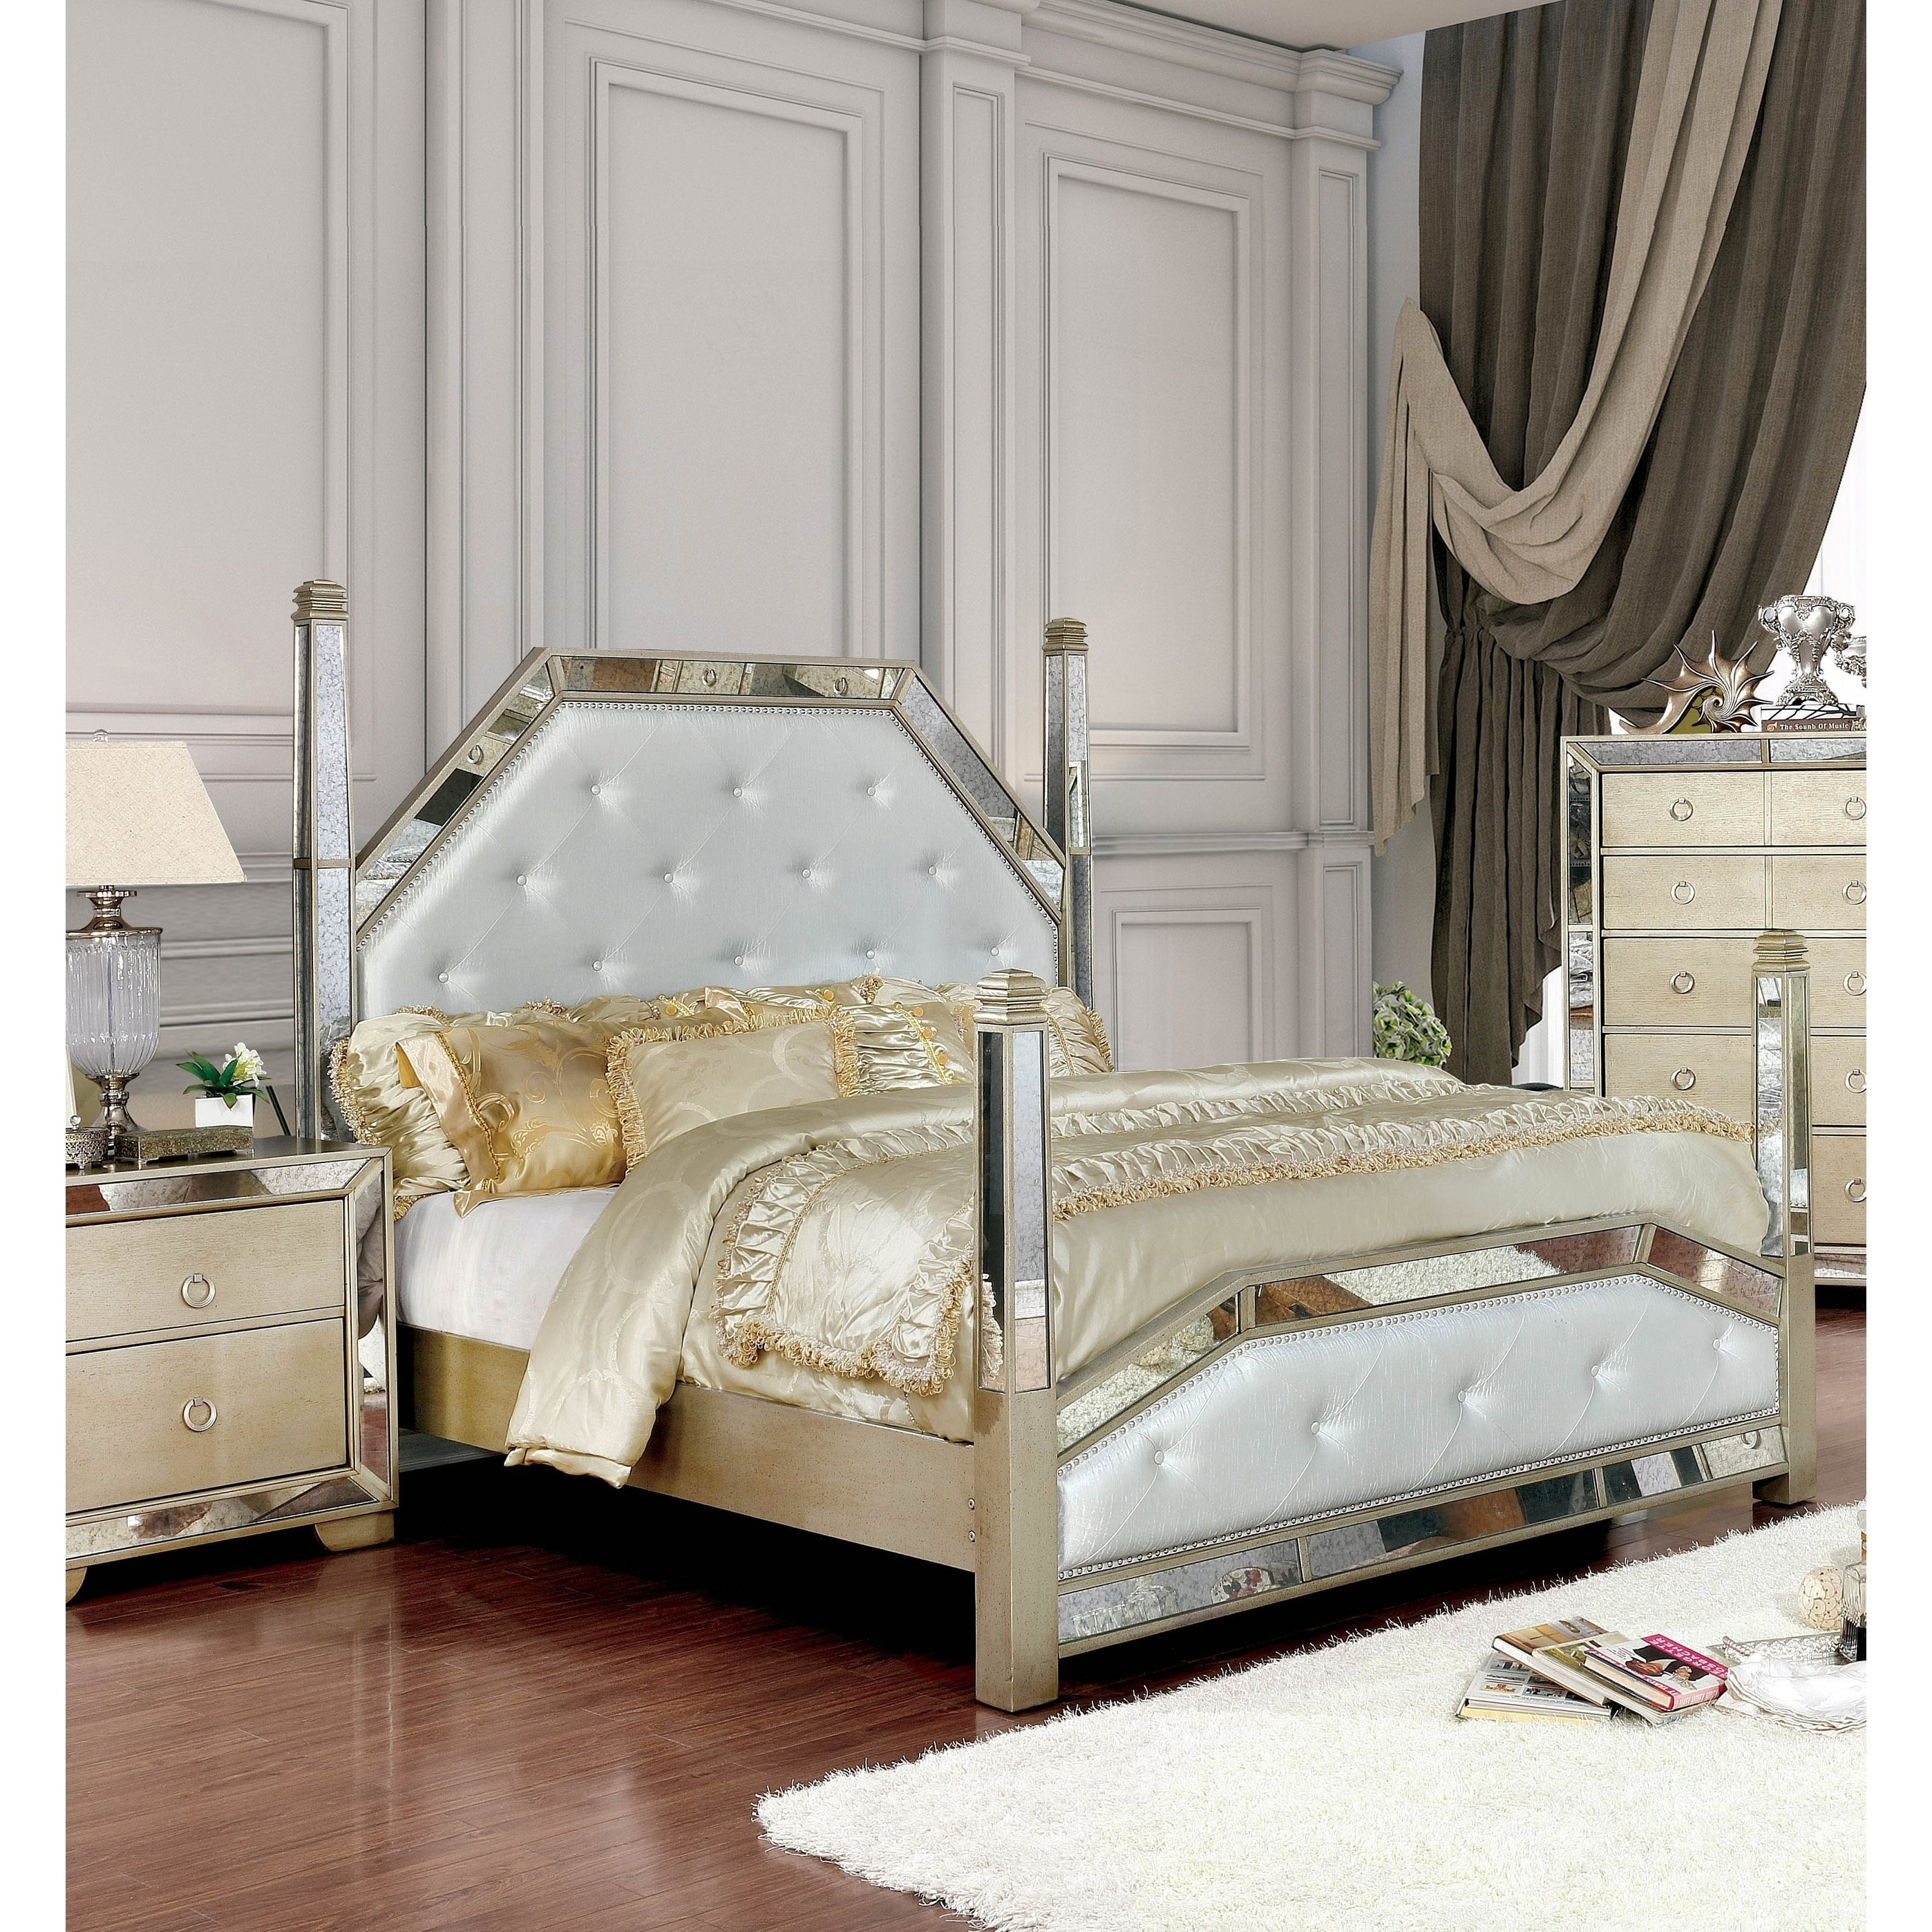 Furniture Of America Gevi Glam Silver Faux Leather 4 Poster Bed Overstock 20879207